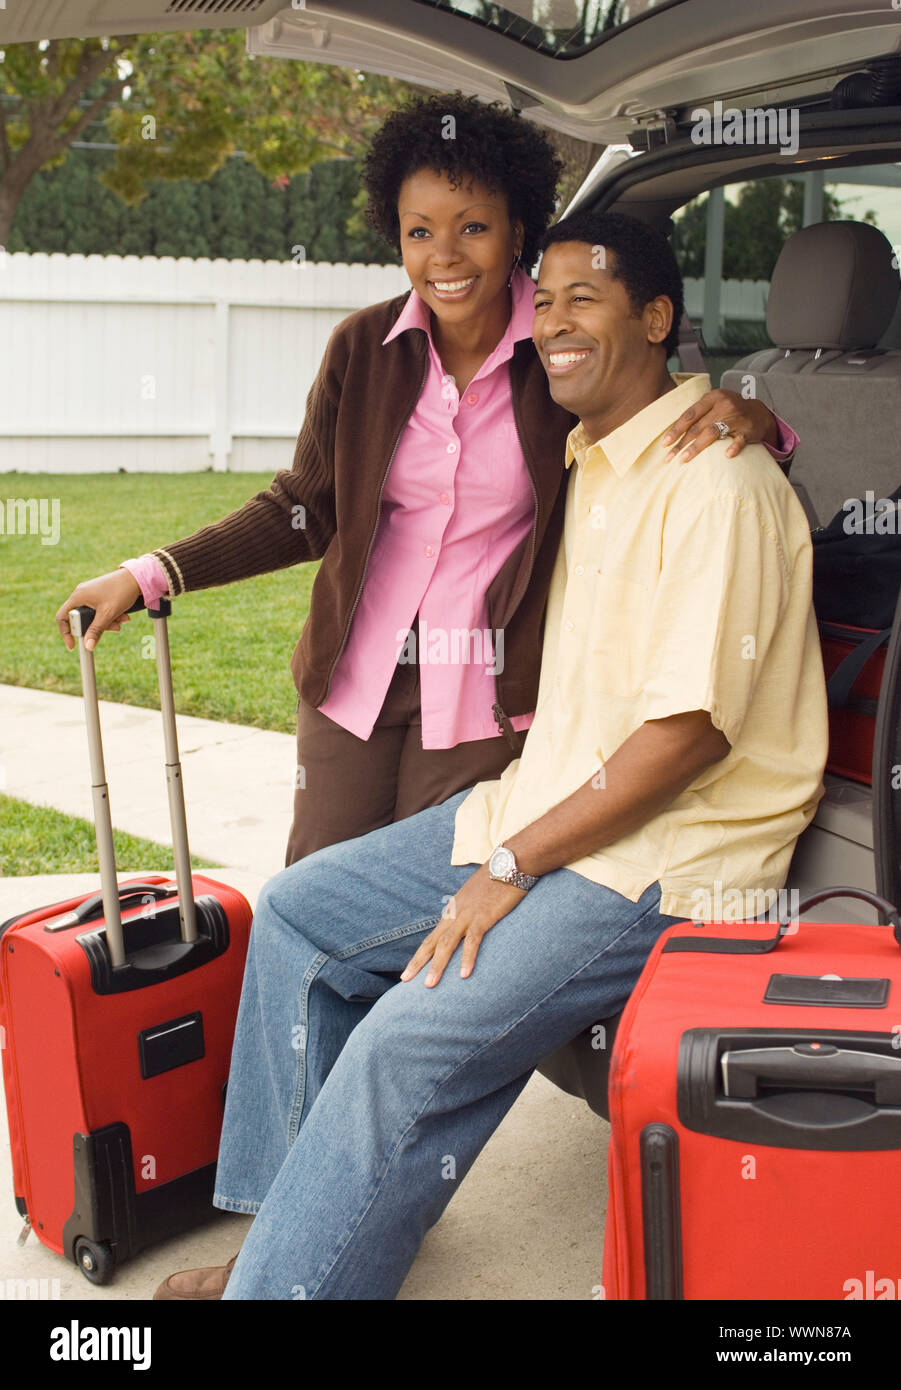 Couple and Luggage Standing by Minivan Stock Photo